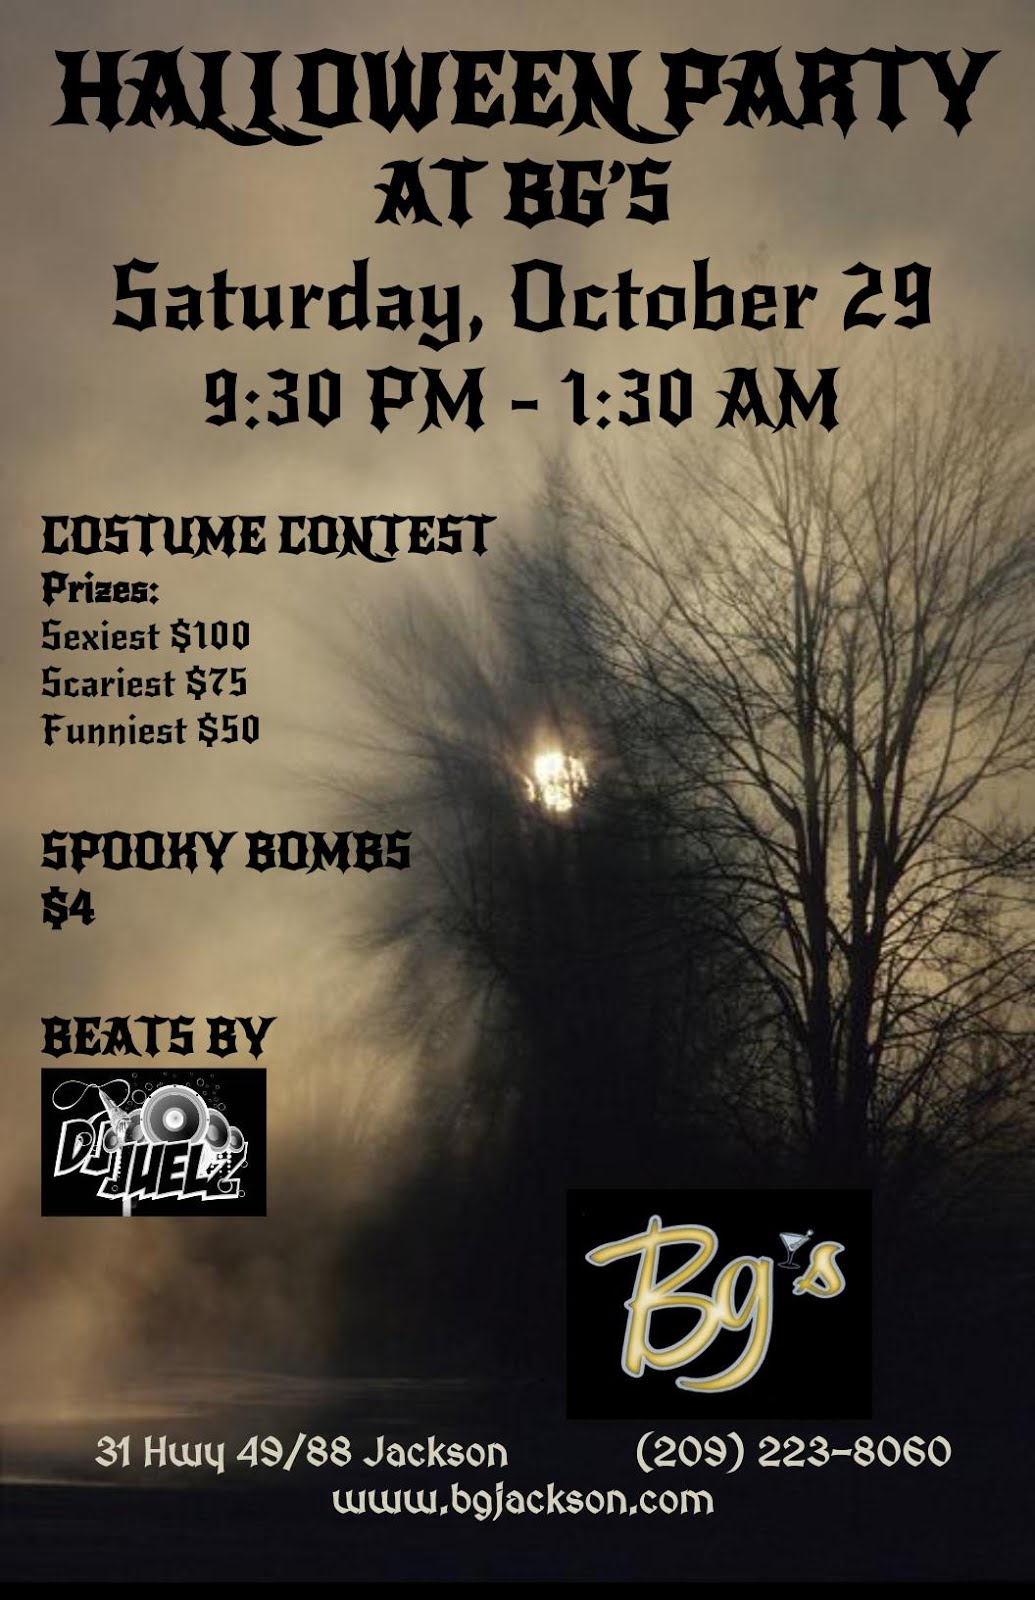 Halloween Party at Bg's - Sat Oct 29